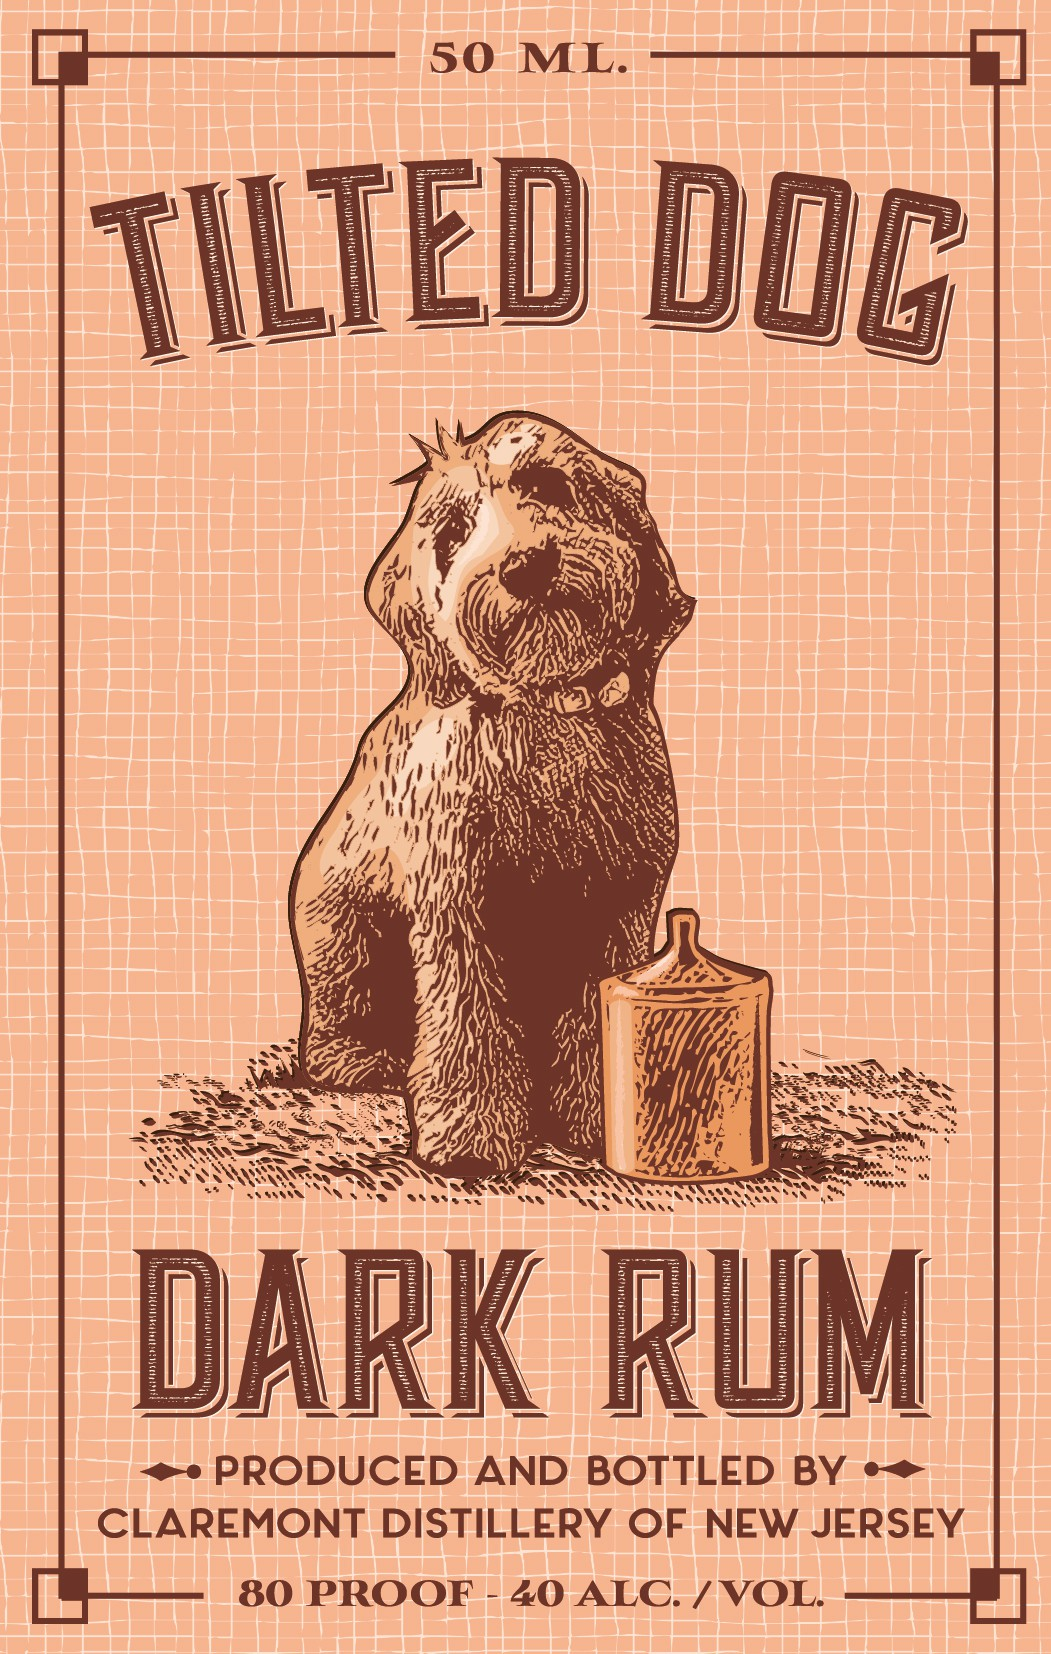 Create the Label for Twisted Dog Dark Rum